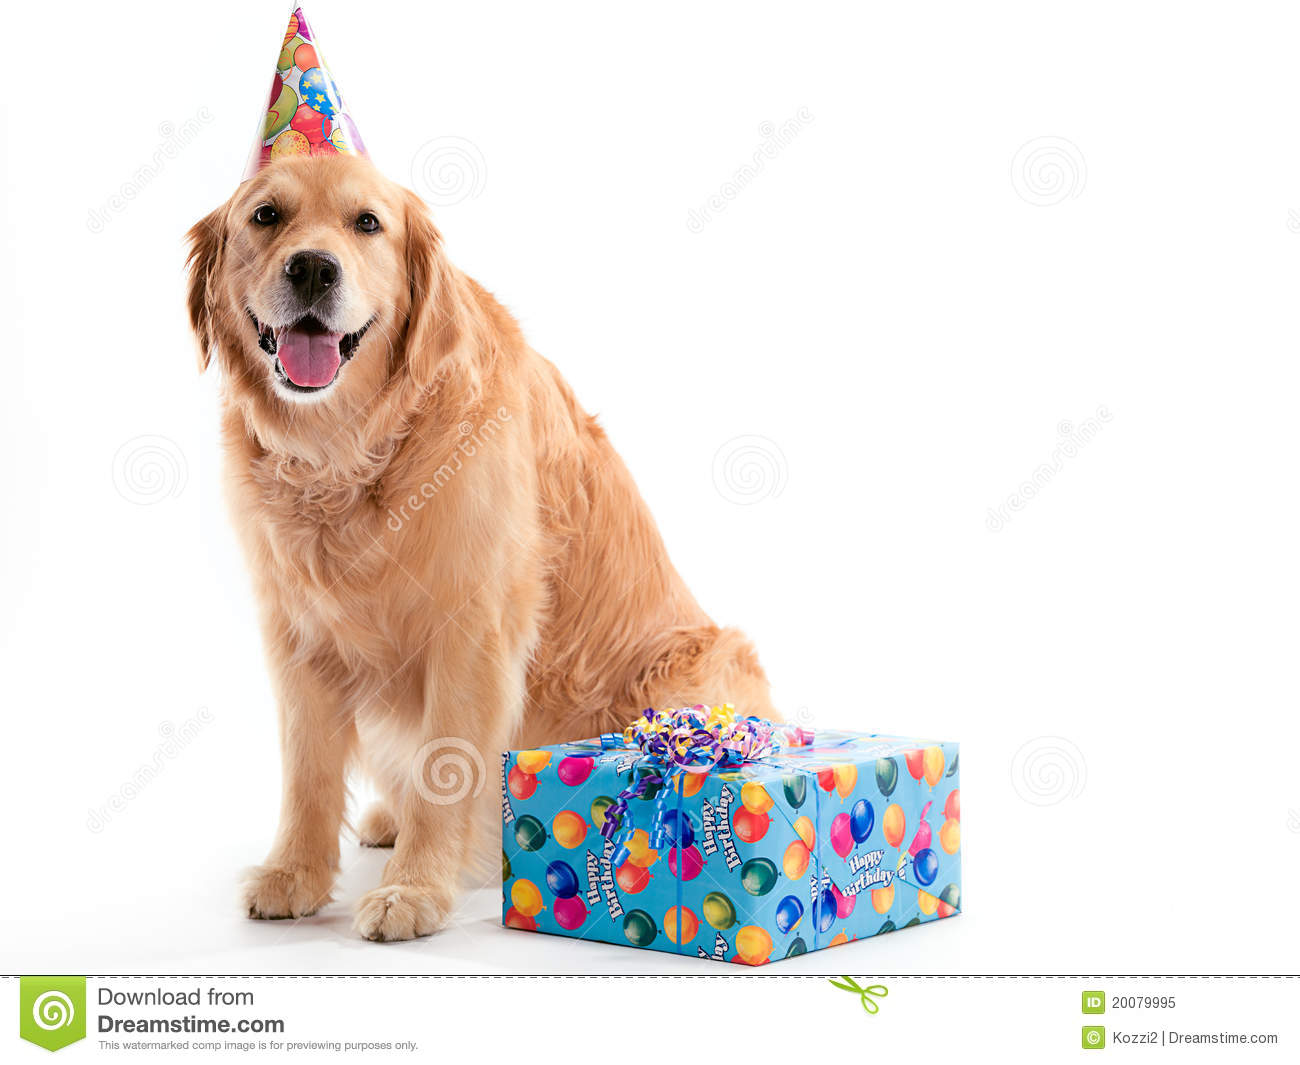 Dog with Birthday present  sc 1 st  Dreamstime.com & Dog with Birthday present stock image. Image of camera - 20079995